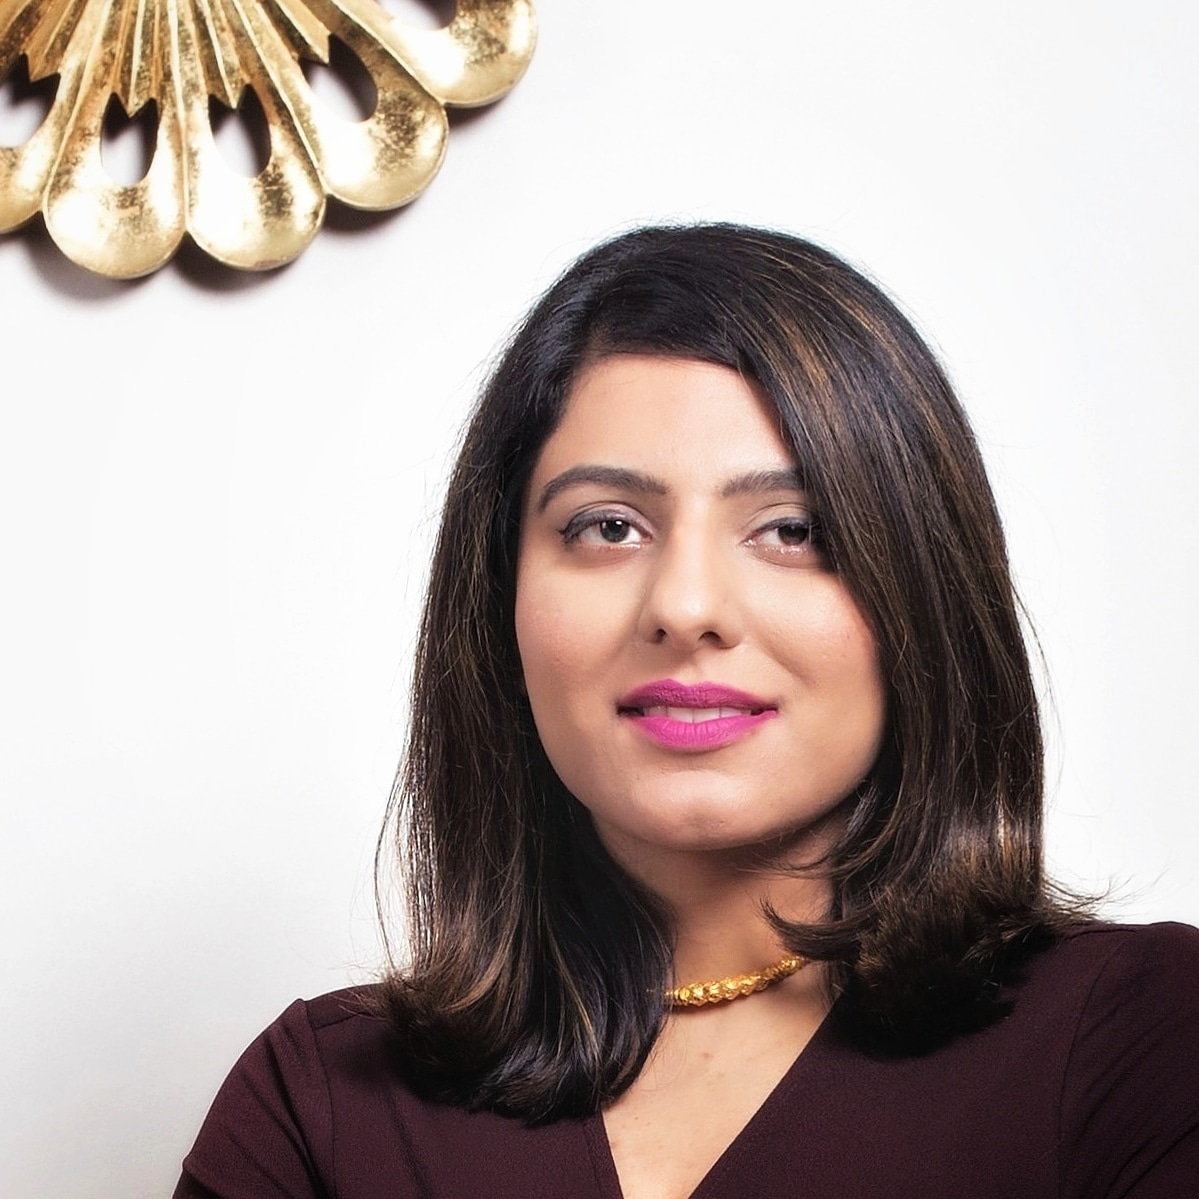 DR SONAM YADAV | MEDICAL DIRECTOR - A celebrated aesthetic physician known for natural facial sculpting, Dr Yadav has trained at elite medical schools in India and the UK, completing MBBS & Masters degrees, with awards and distinctions, and further cosmetic training, across the world. She established Juverne with a goal to offer more personalized and nuanced solutions - moving on from heading the luxury cosmetic establishment Three Graces & continues to work as an opinion leader for new technologies & an advocate for patient education.Recent Features:Smarter Beauty | Bridal Skincare